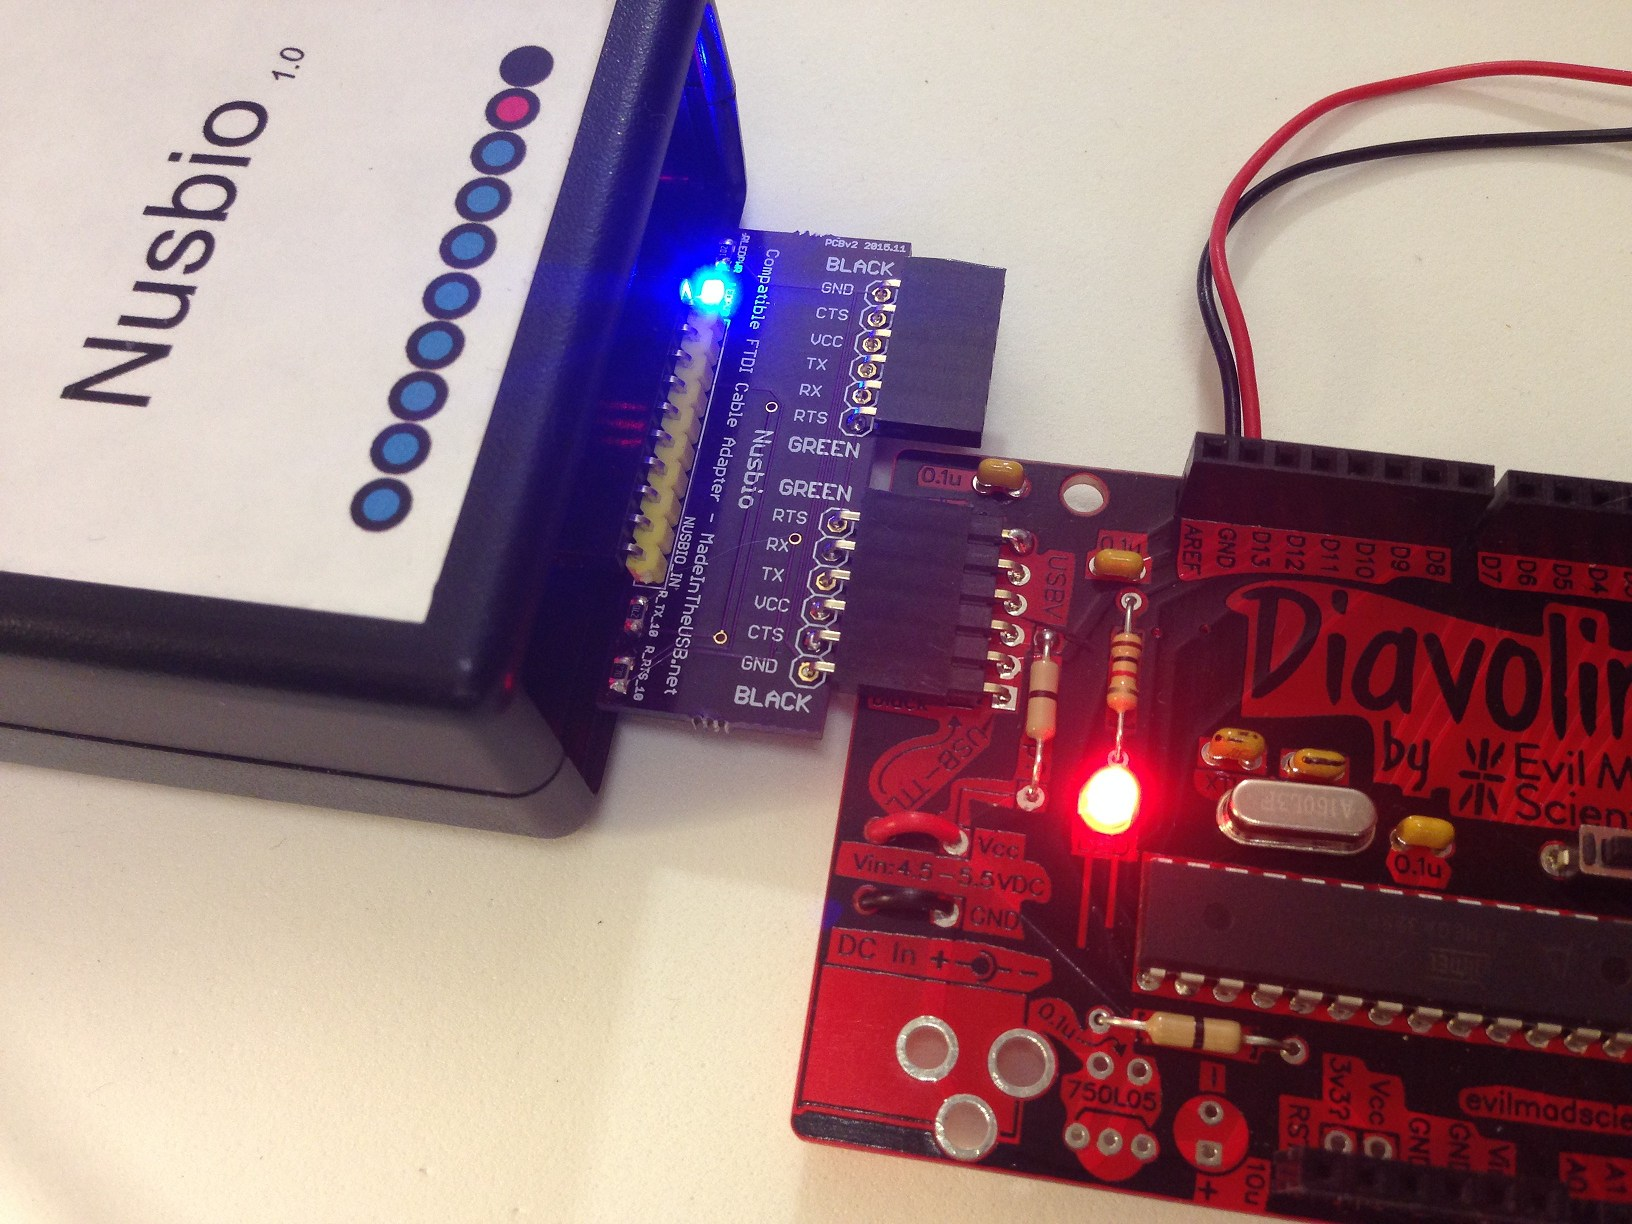 Madeintheusbnet How To Build A Digital Potentiometer Circuit Using Mcp4131 Use Nusbio Program Any Arduino Compatible With No Uart Like The Adafruit Trinket Pro Or Diavolino